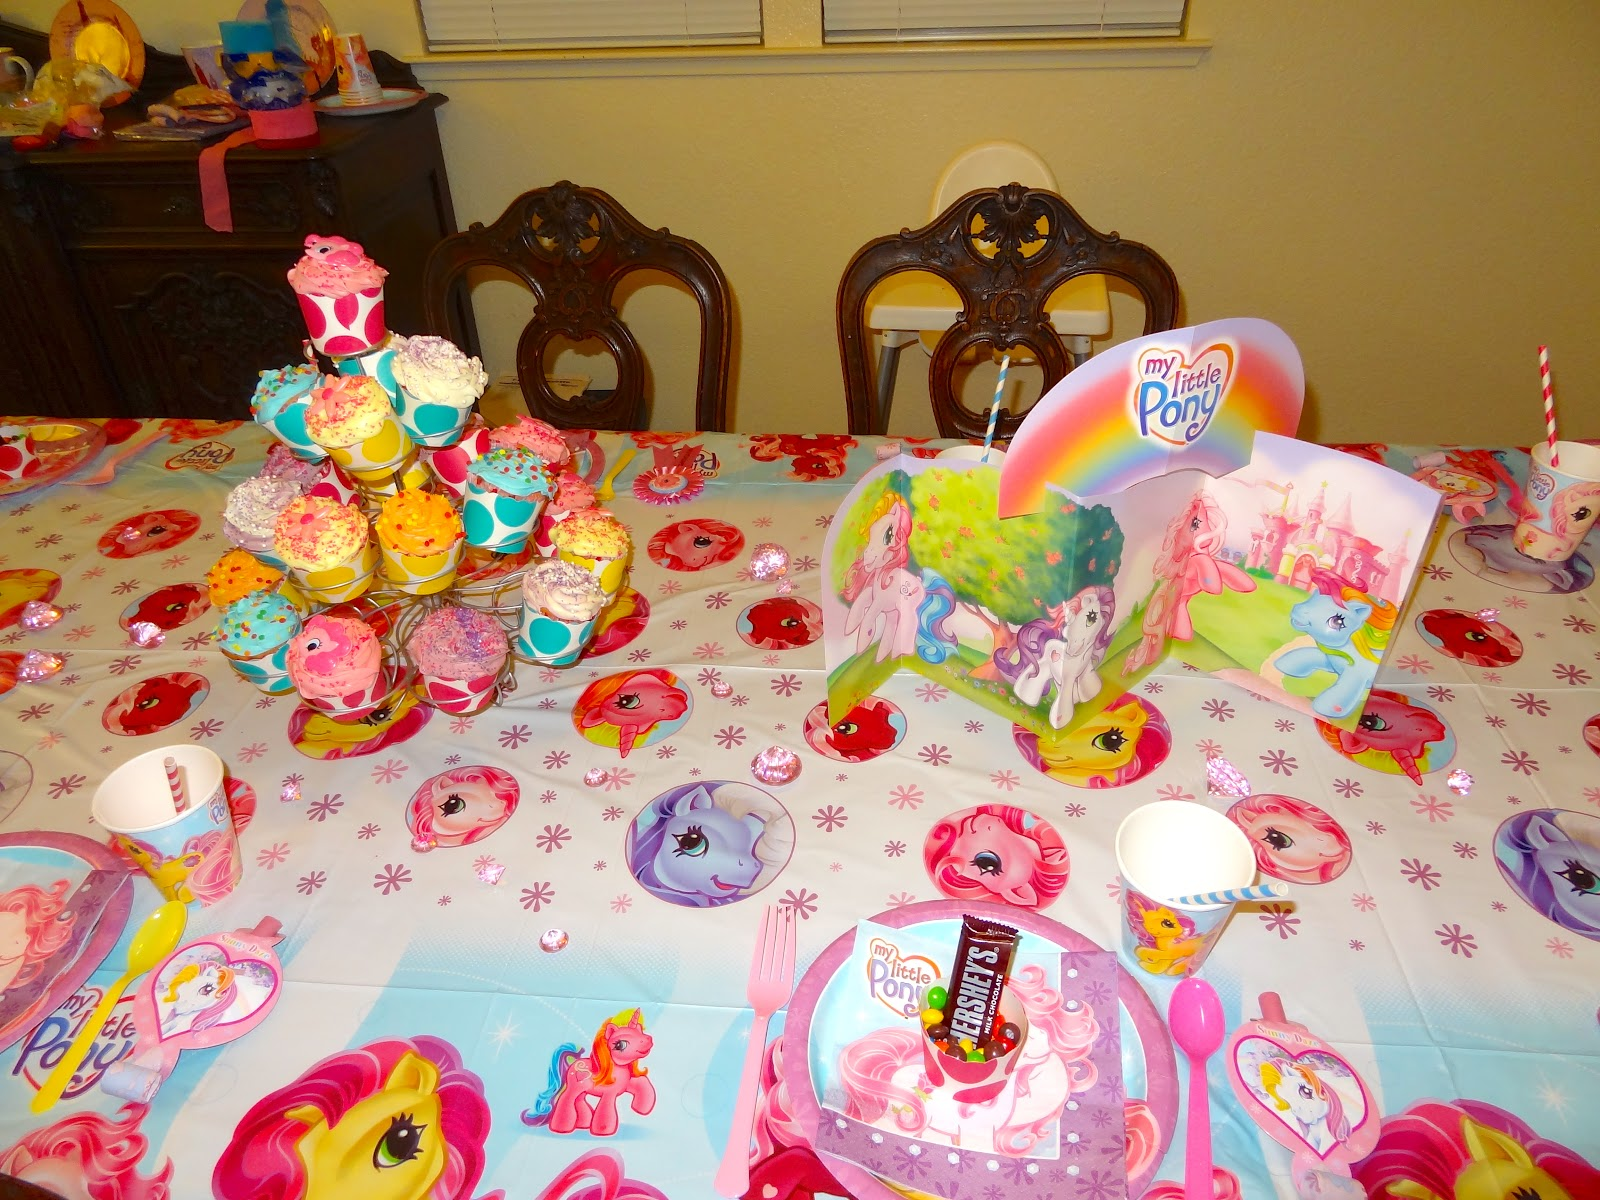 My Little Pony Cake Decorating Supplies